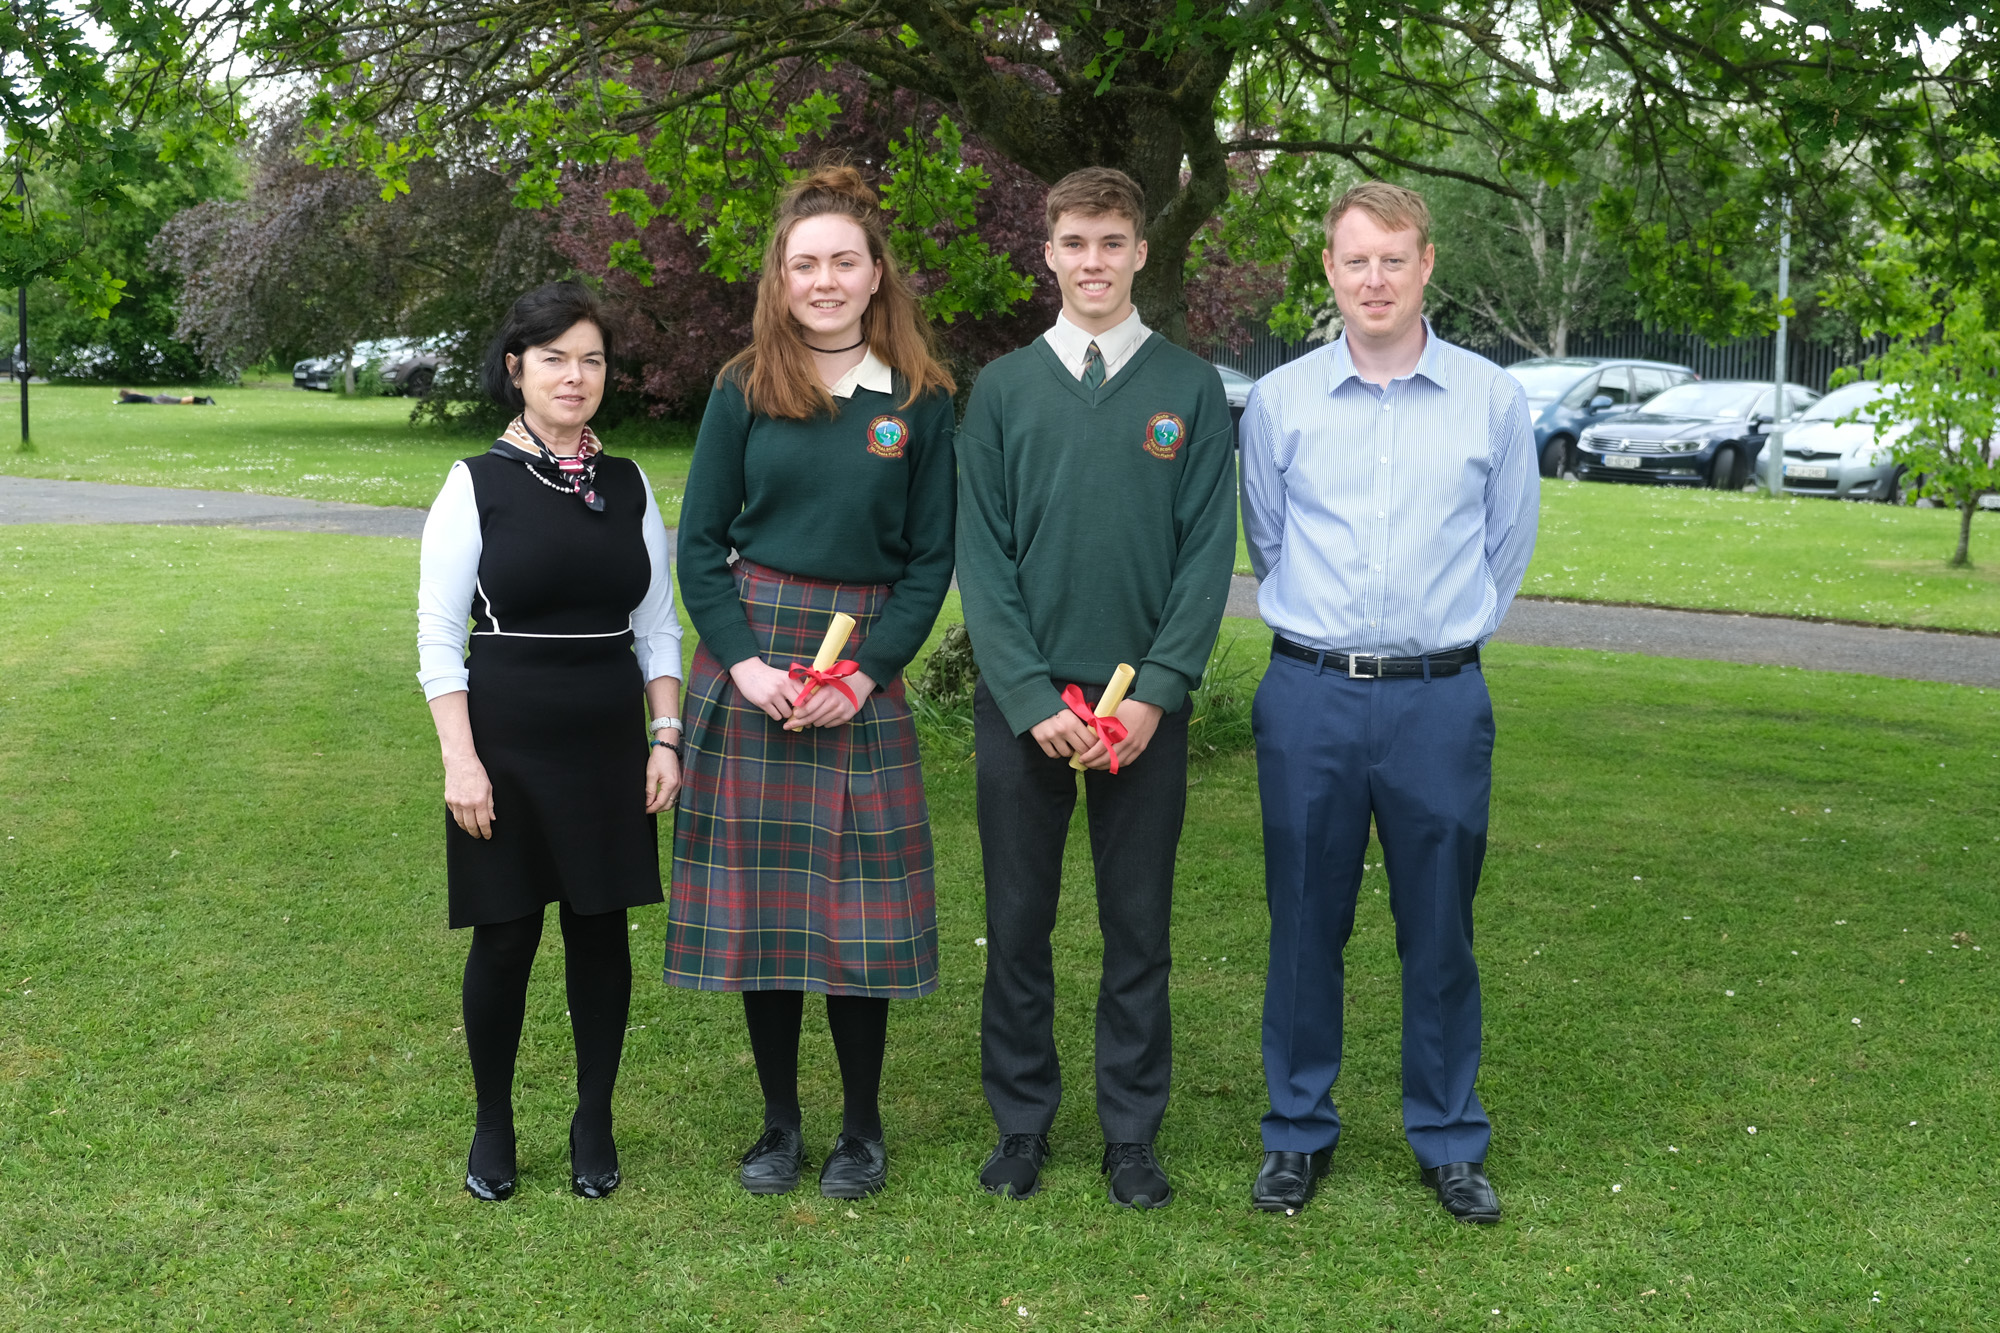 Arts and Literature Award  Betty O'Hare, Katerina Healy, Keeley Hogan, Mark Kennedy